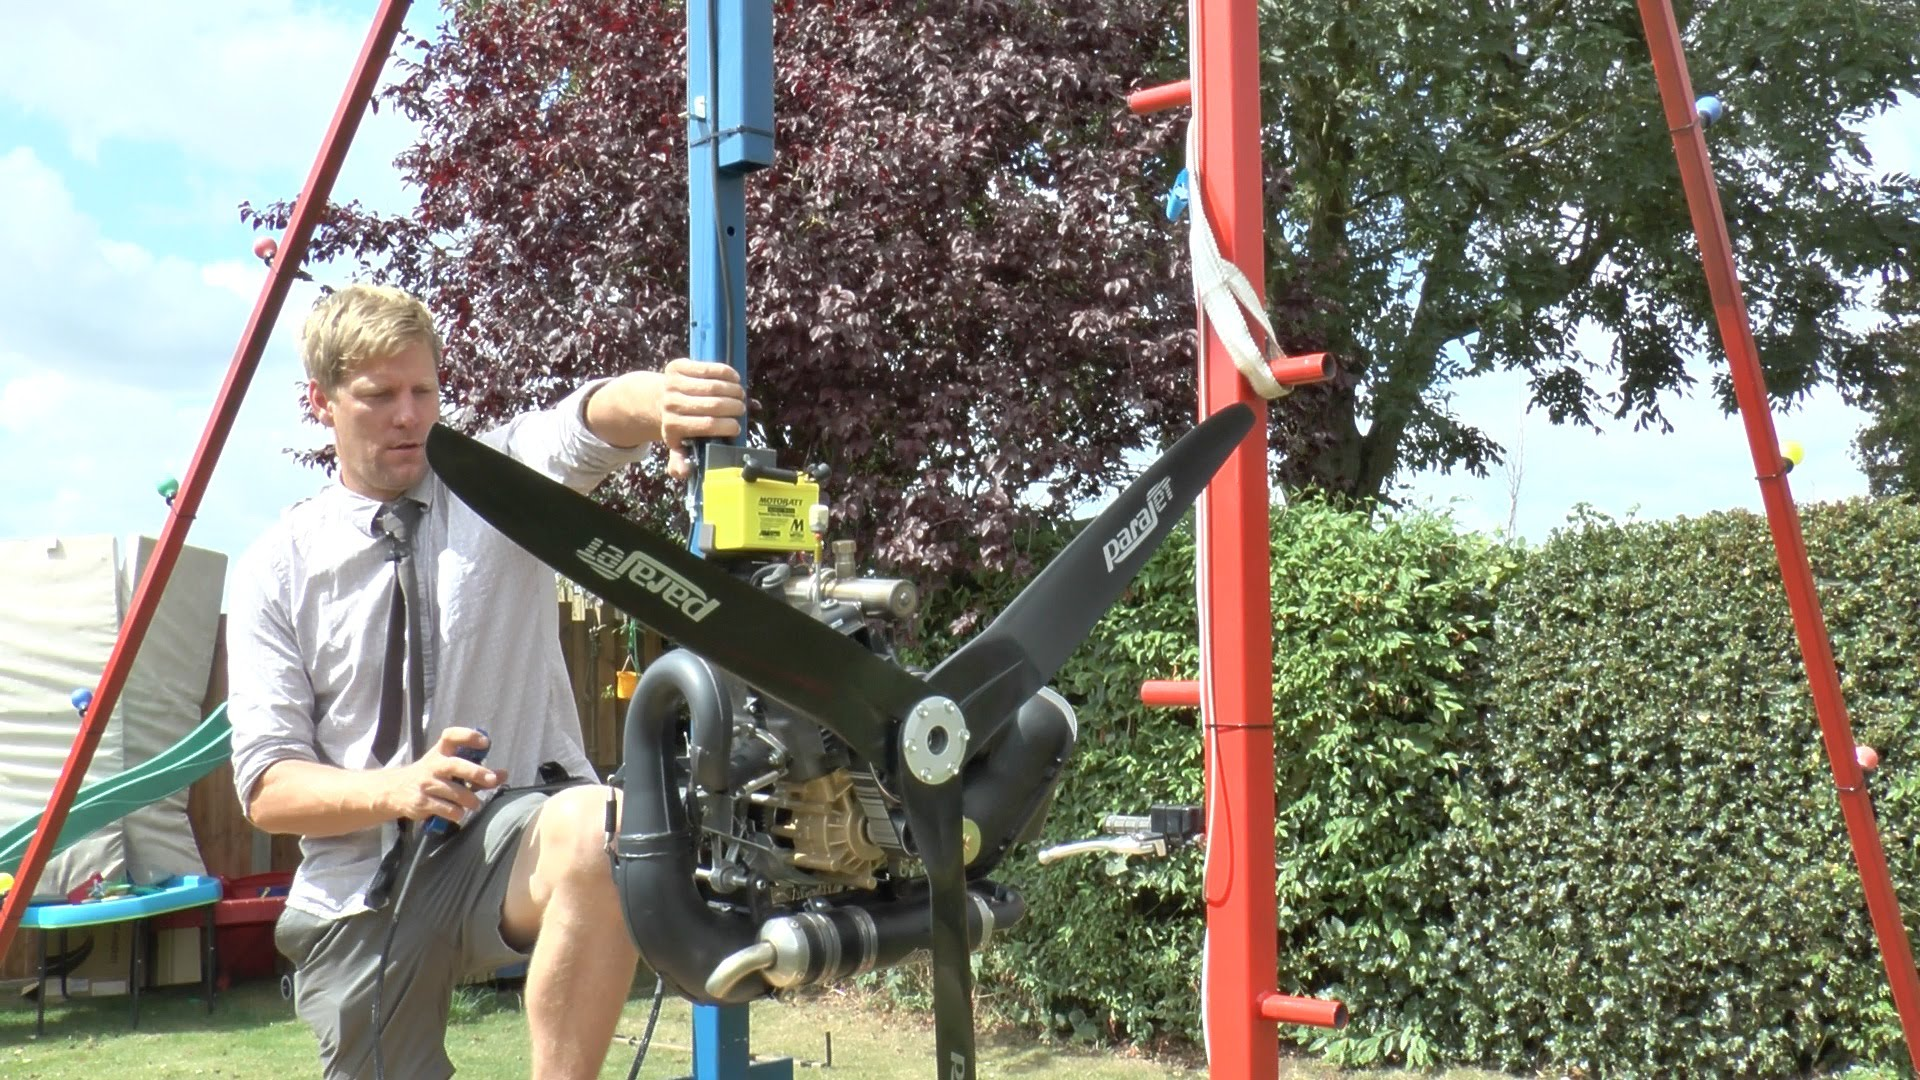 colin furze adds a paramotor to his enormous backyard 360